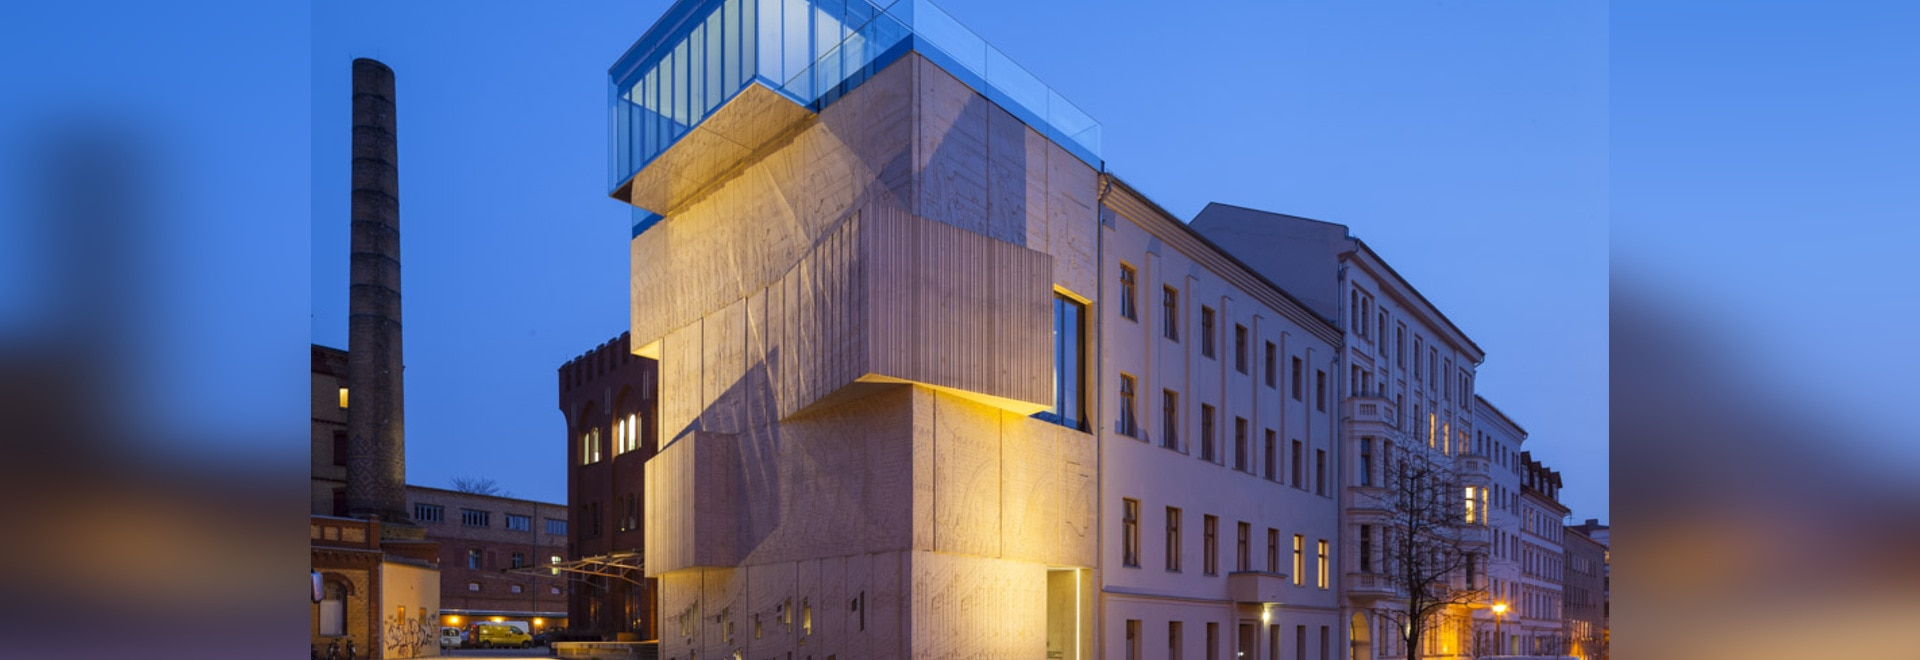 berlin s tchoban foundation museum shelters architectural history